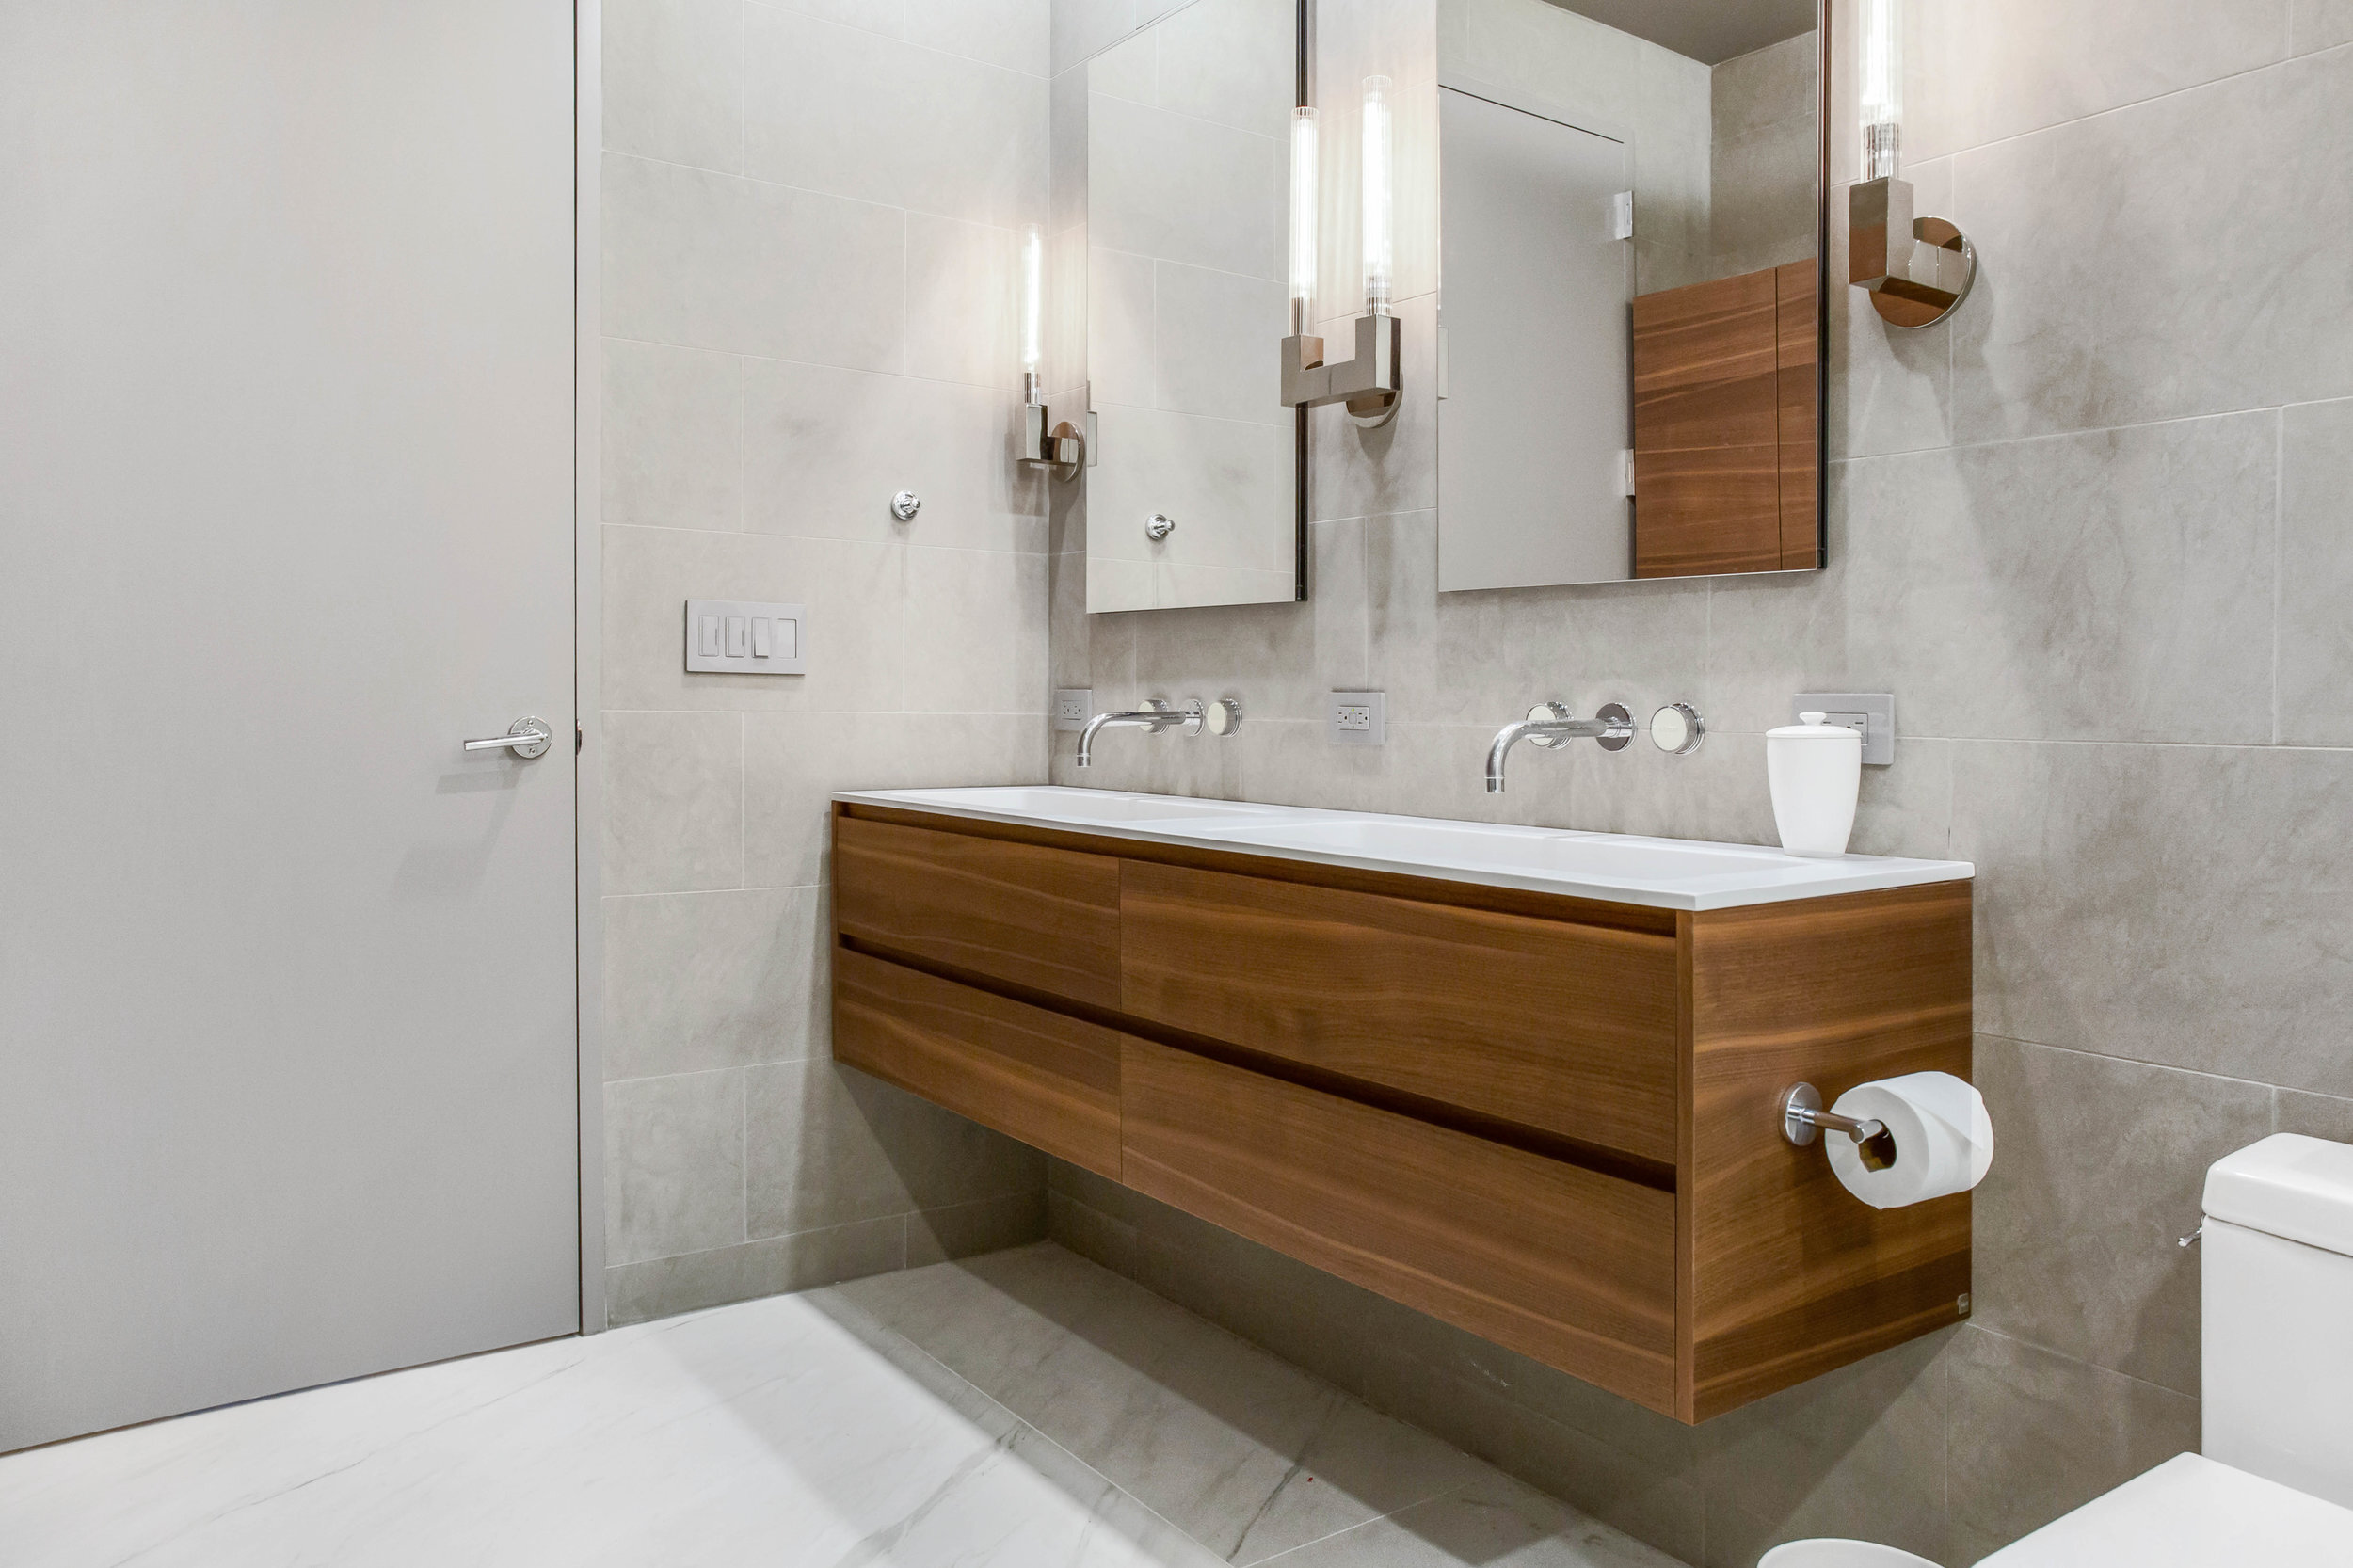 residential-projects-Chelsea-comp8.jpg